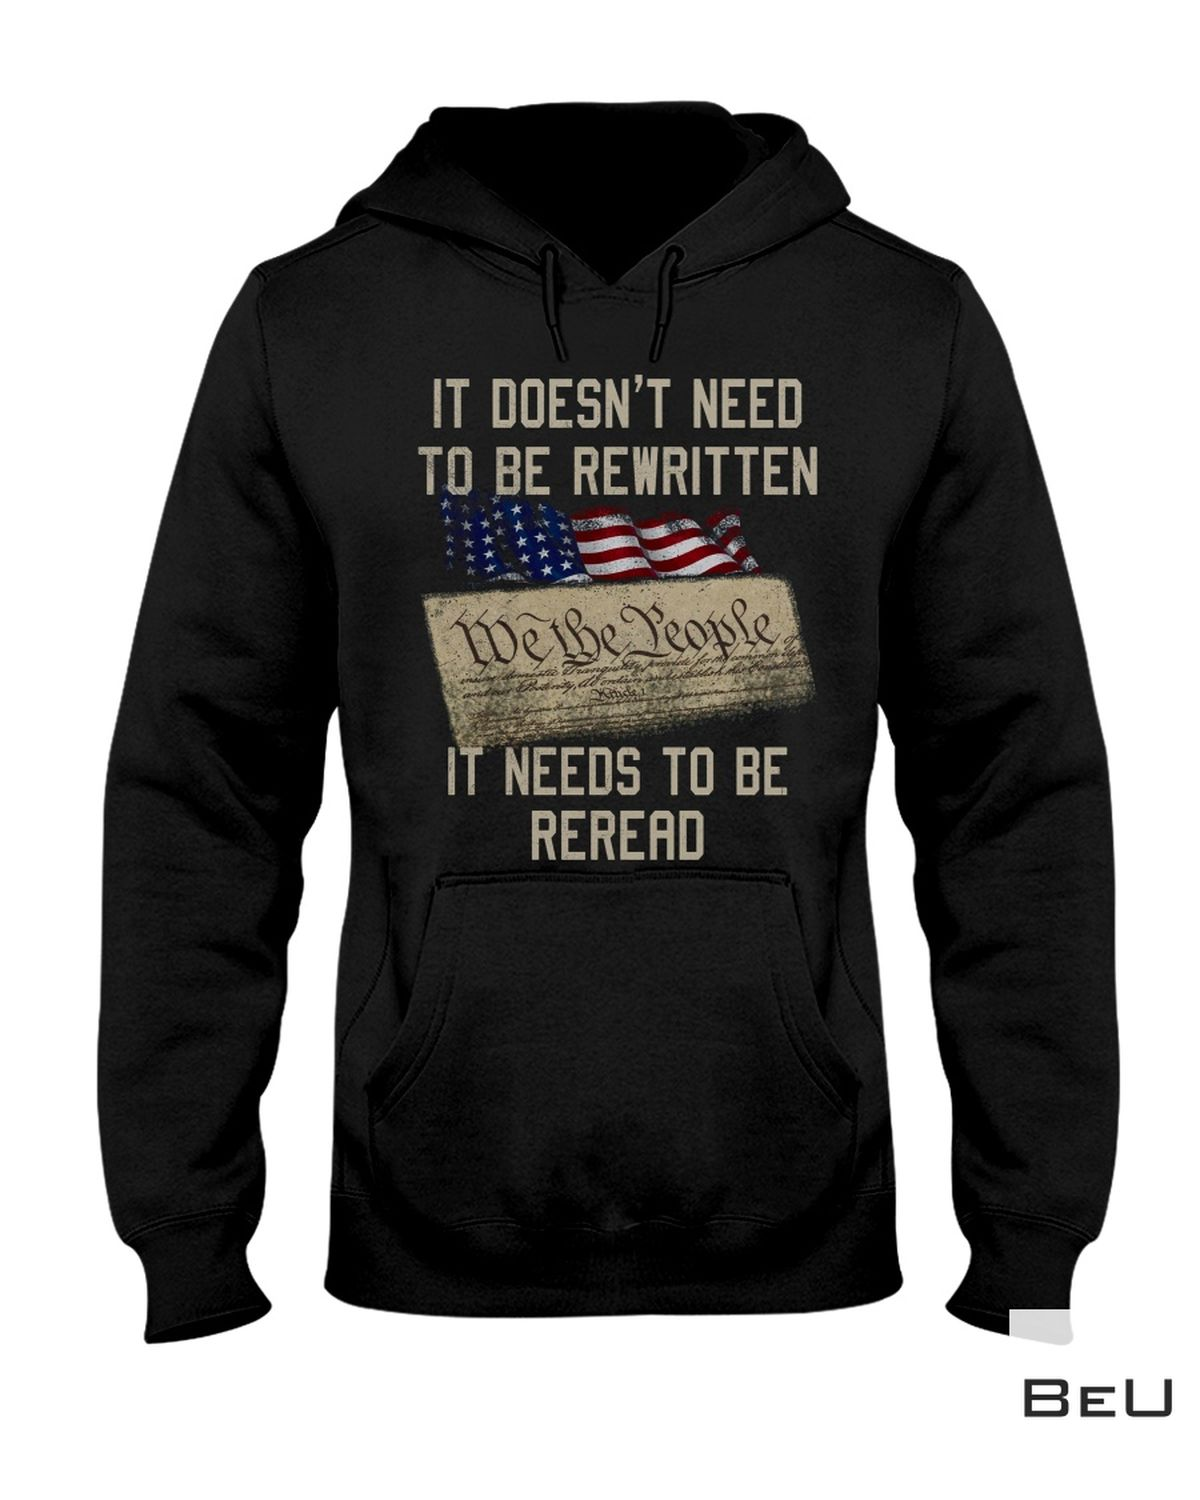 Buy In US It Doesn't Need To Be Rewritten It Needs To Be Reread Shirt, hoodie, tank top